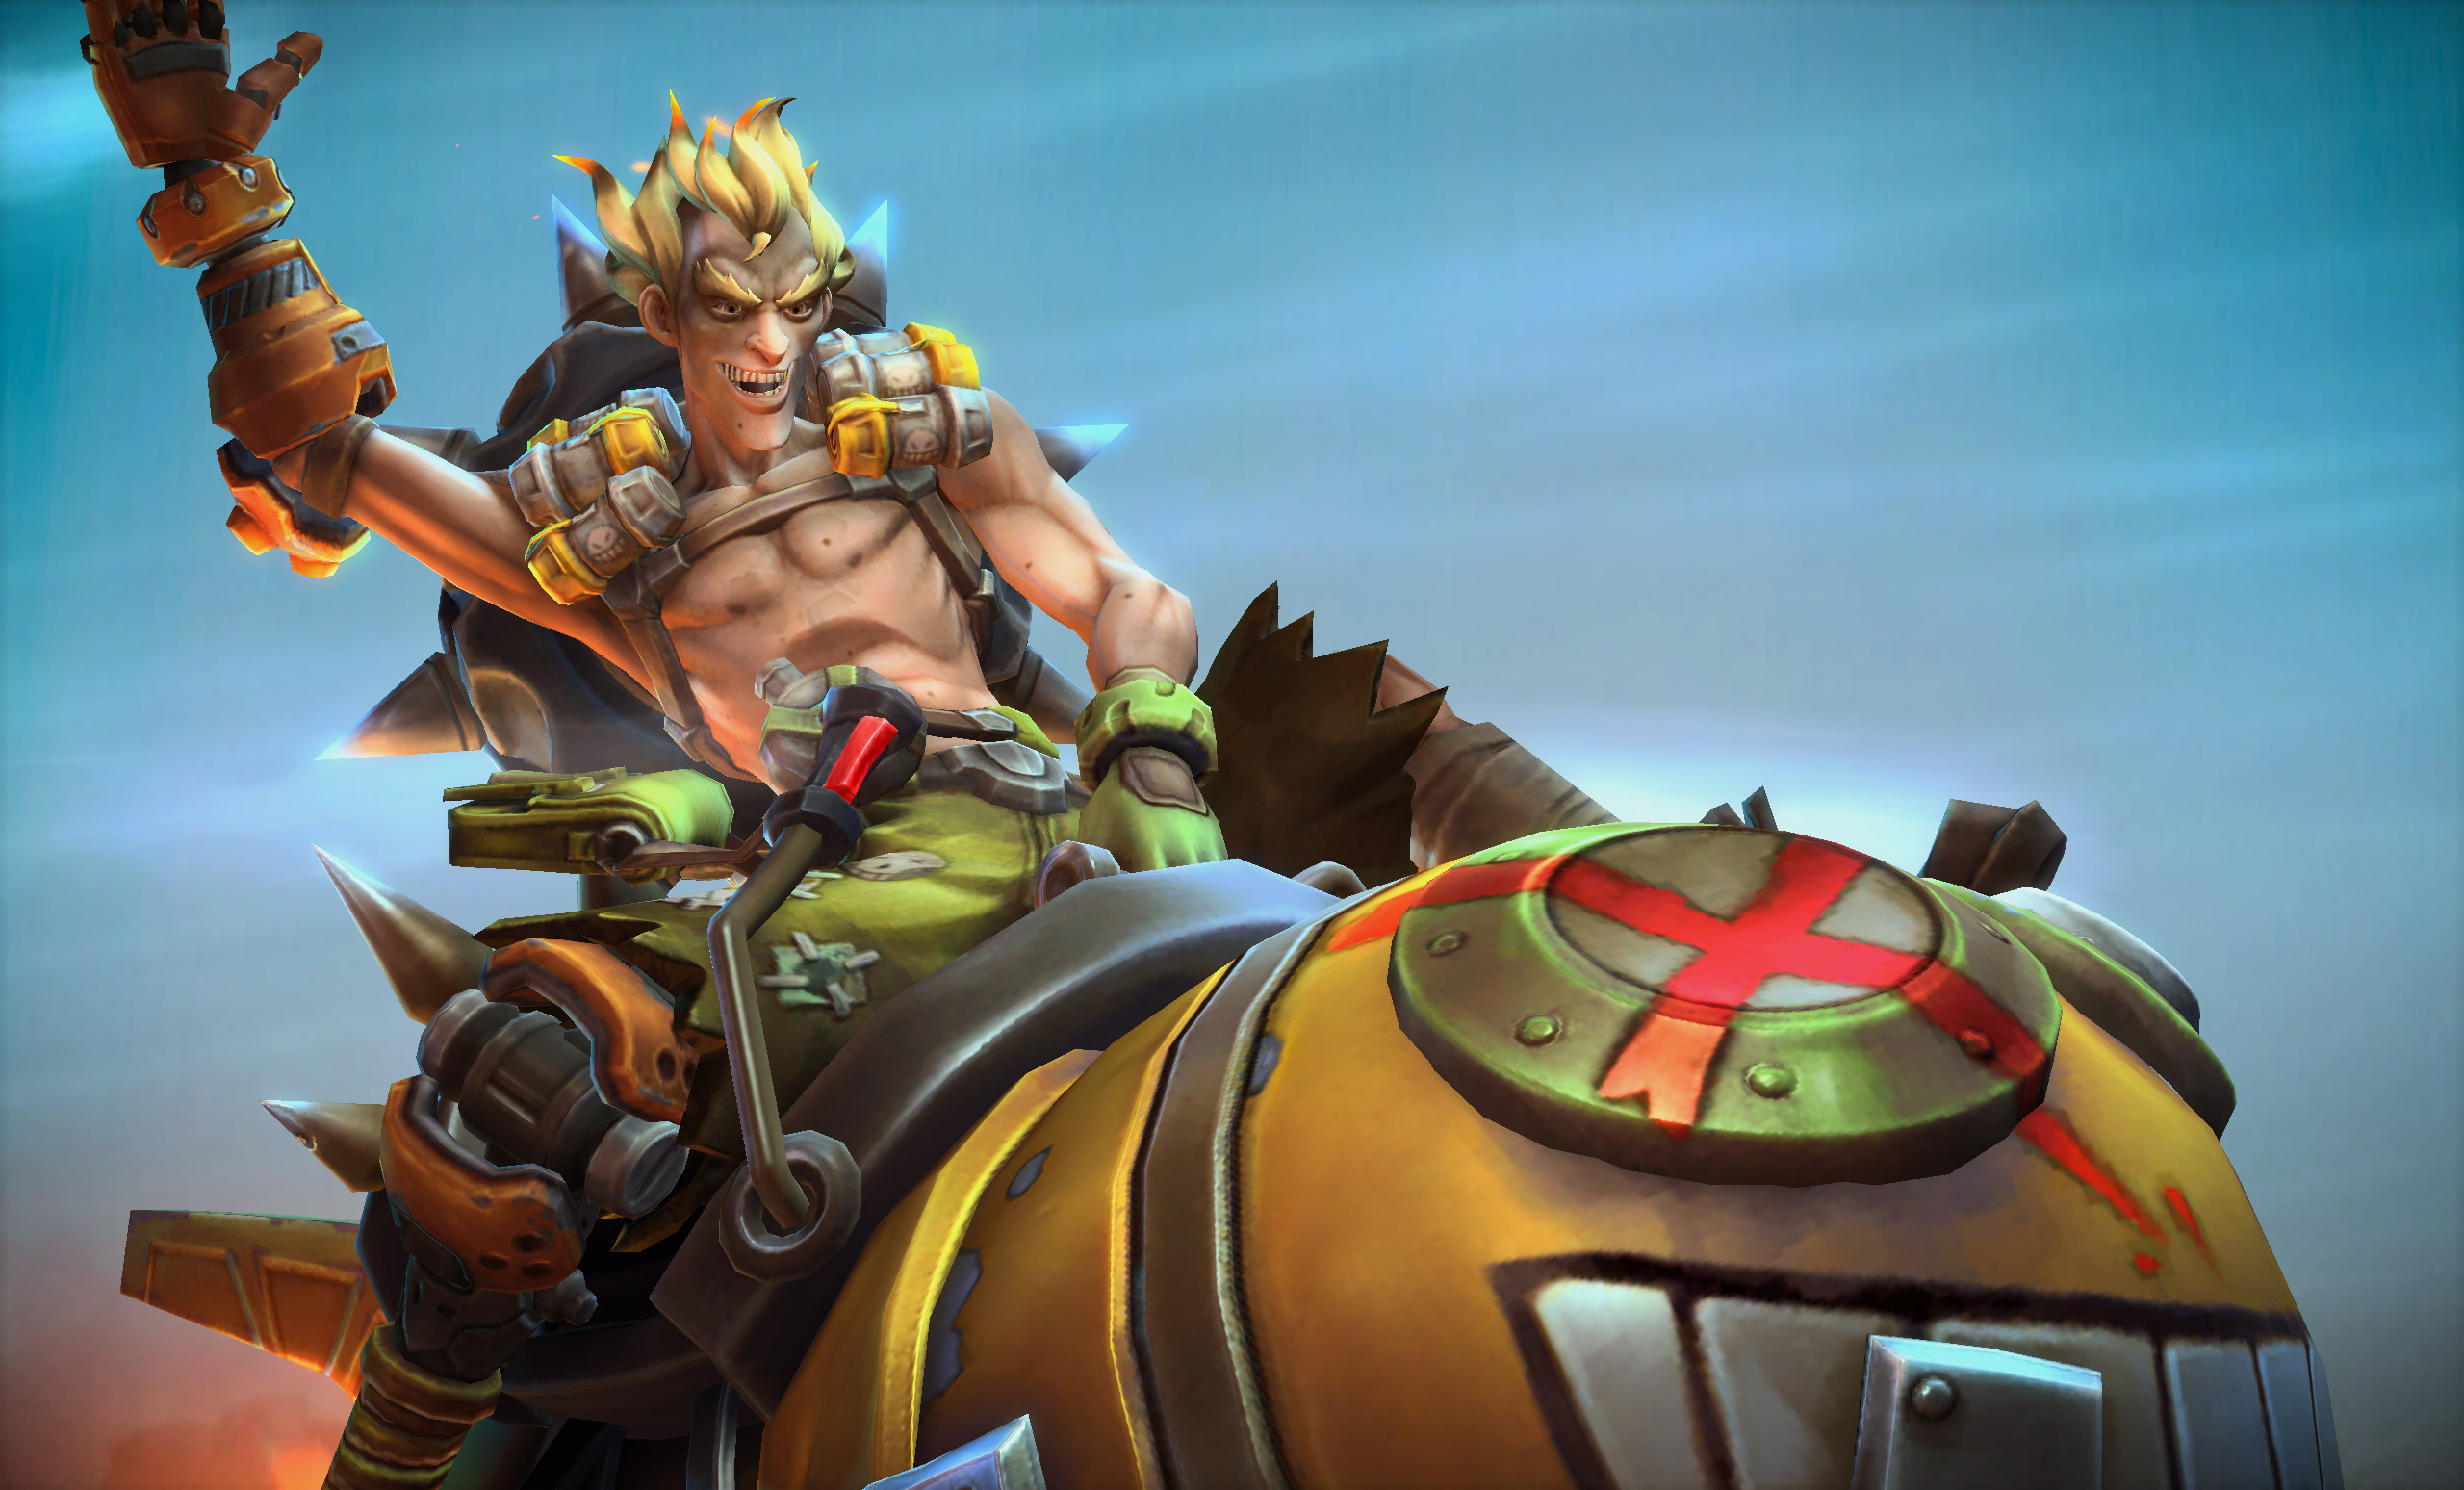 Junkrat Heroes Of The Storm Hd Games 4k Wallpapers Images